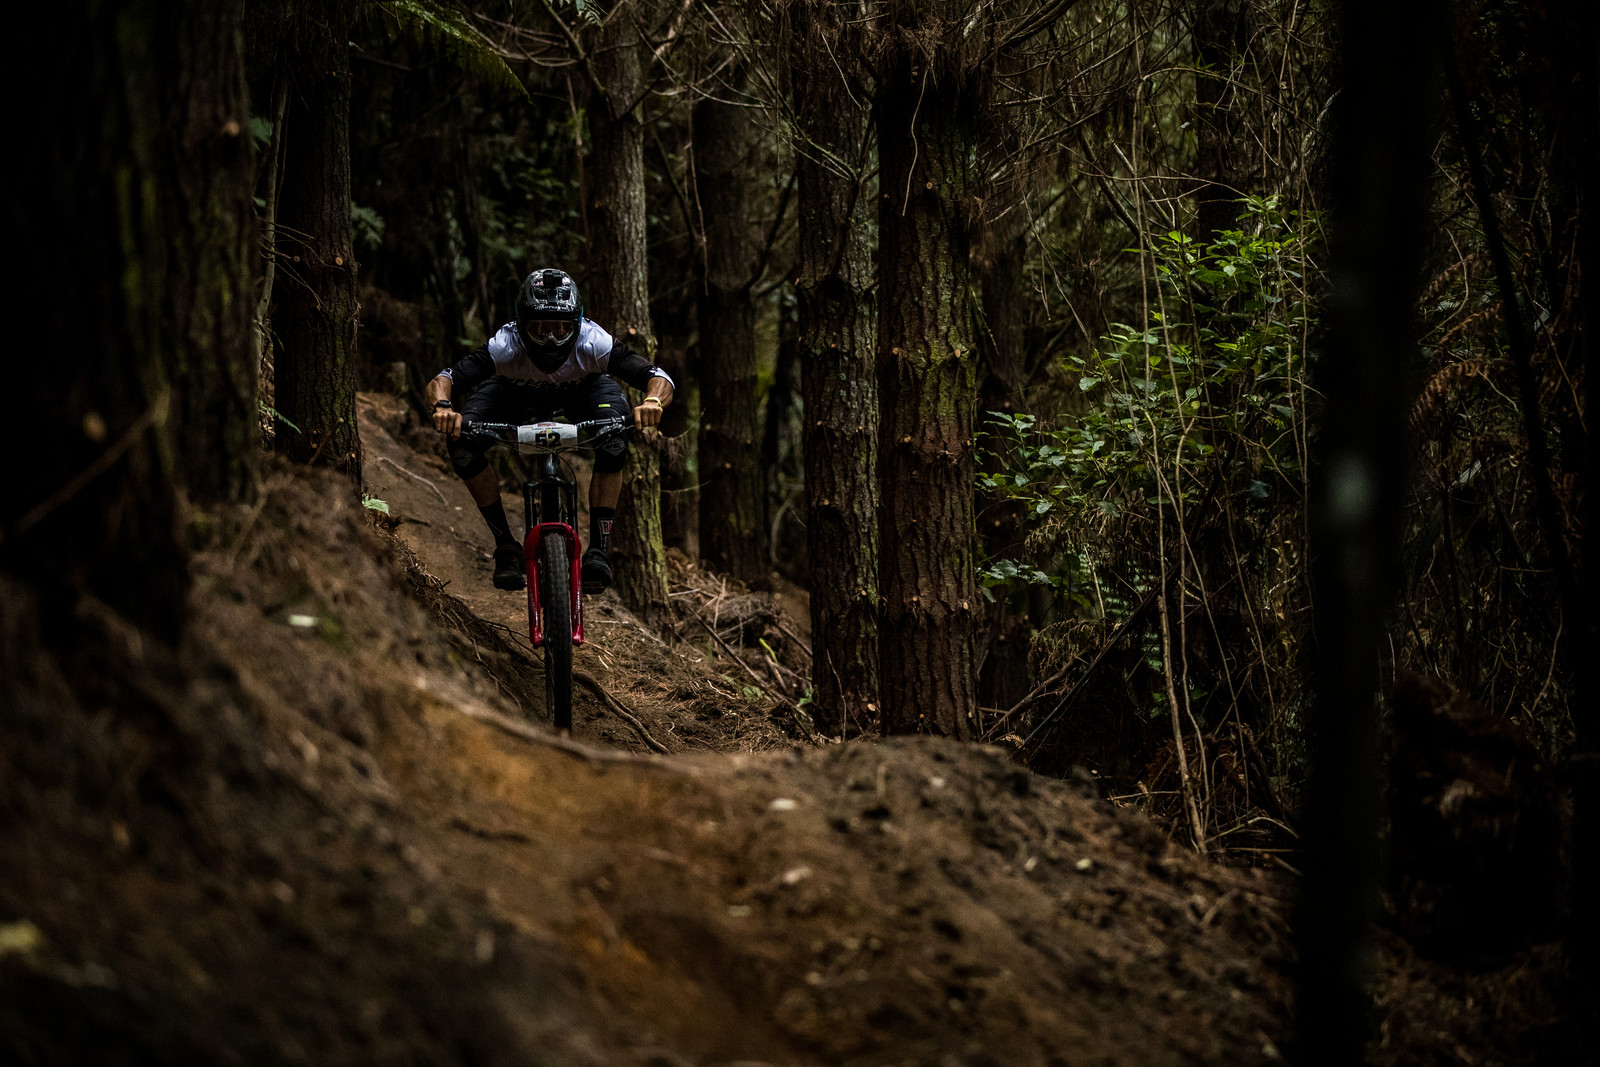 Sam Blenkinsop - 2019 Enduro World Series Crankworx Rotorua - Mountain Biking Pictures - Vital MTB